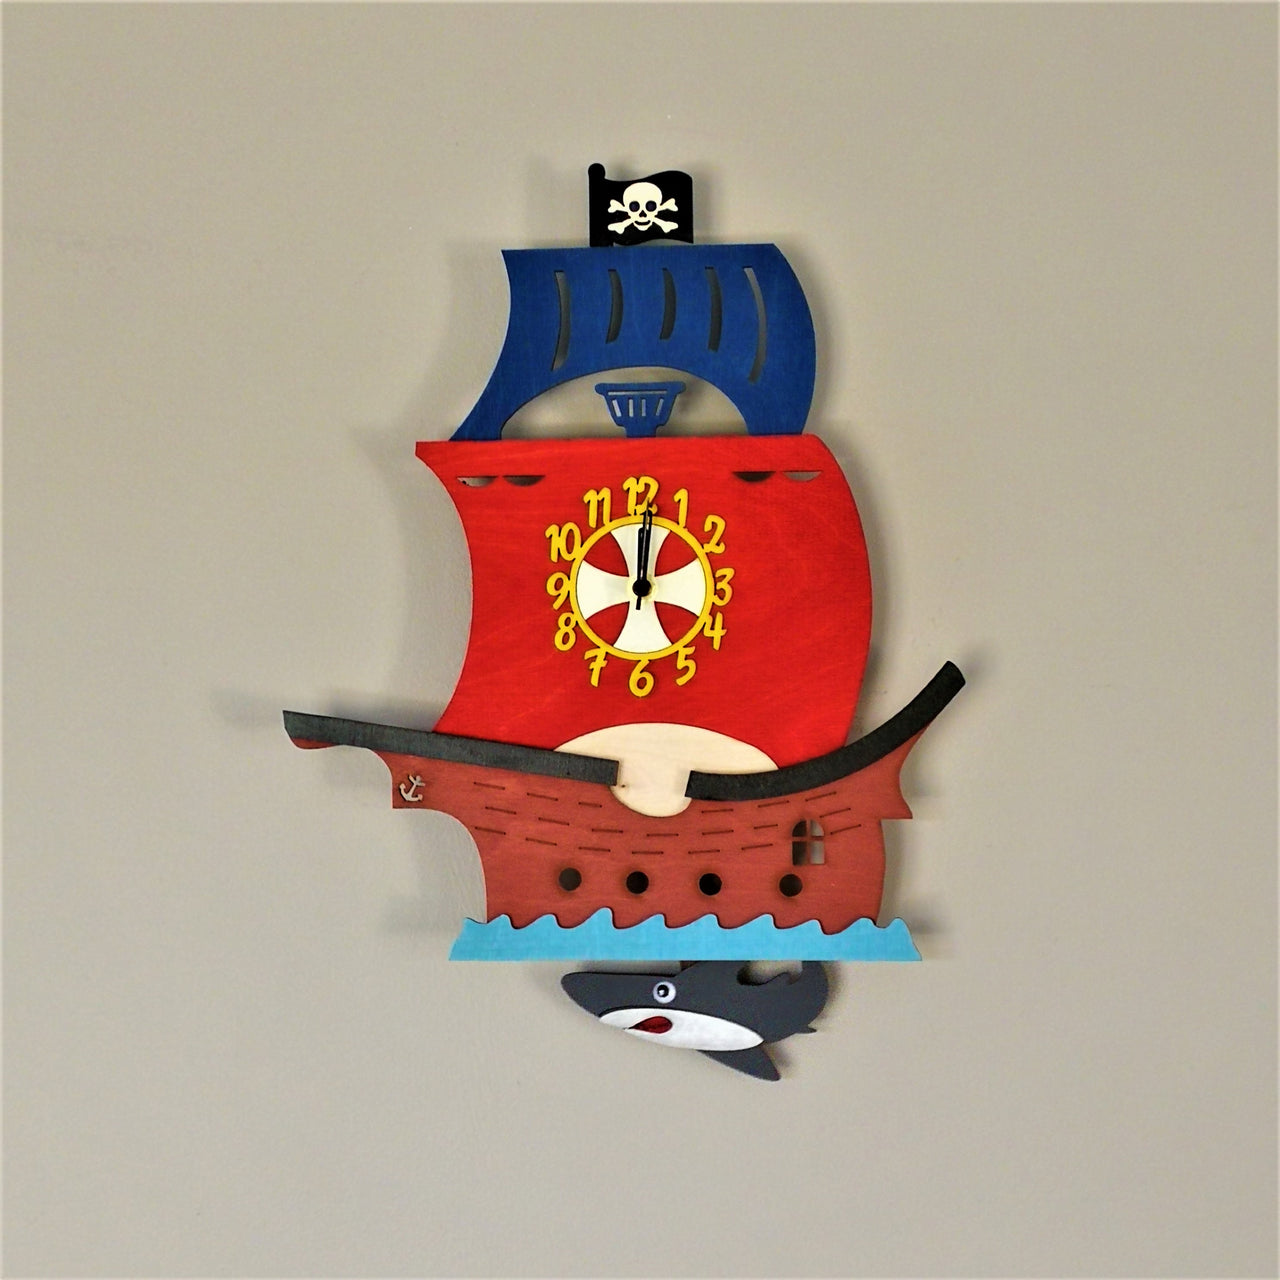 This colourful clock comes alive as a pirate ship sailing over shark-infested waters. The shark serves as a moving pendulum and the clock face is on the main sail of the pirate ship.